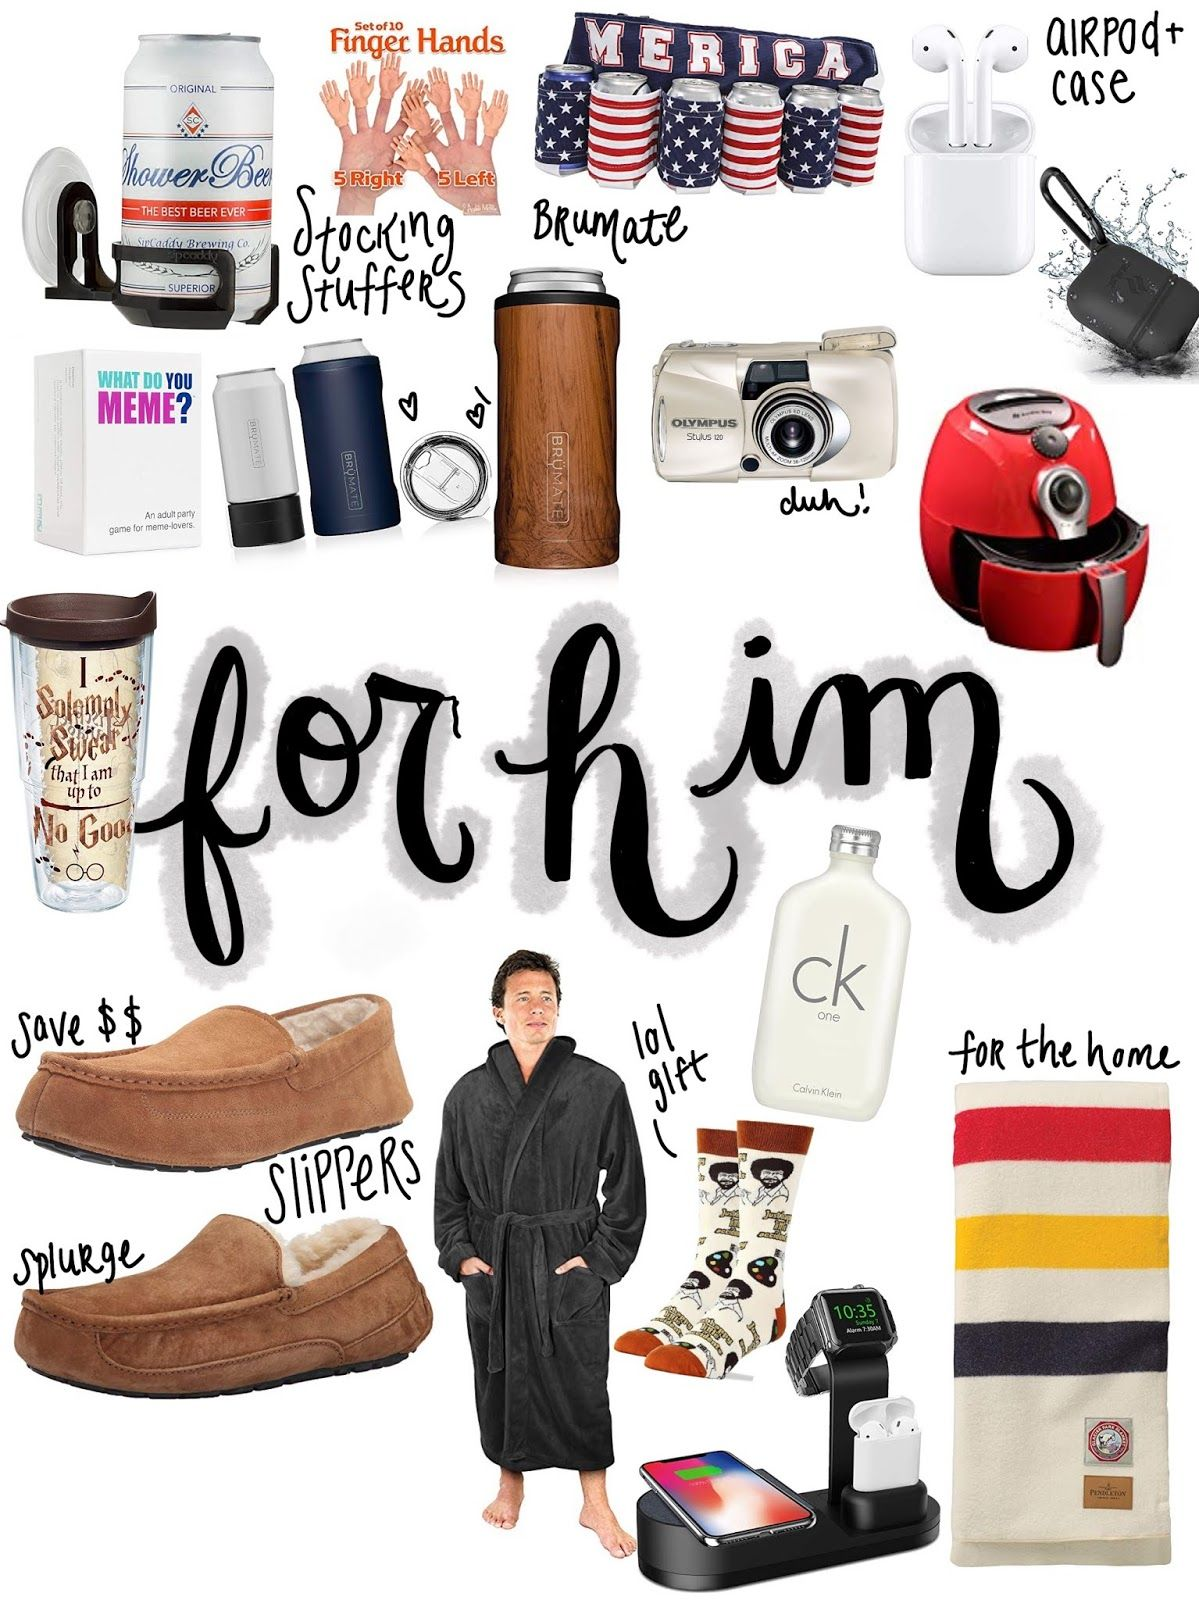 Amazon Last Minute Holiday Gift Guide For Him Gift Guide For Him Amazon Gifts Gift Guide